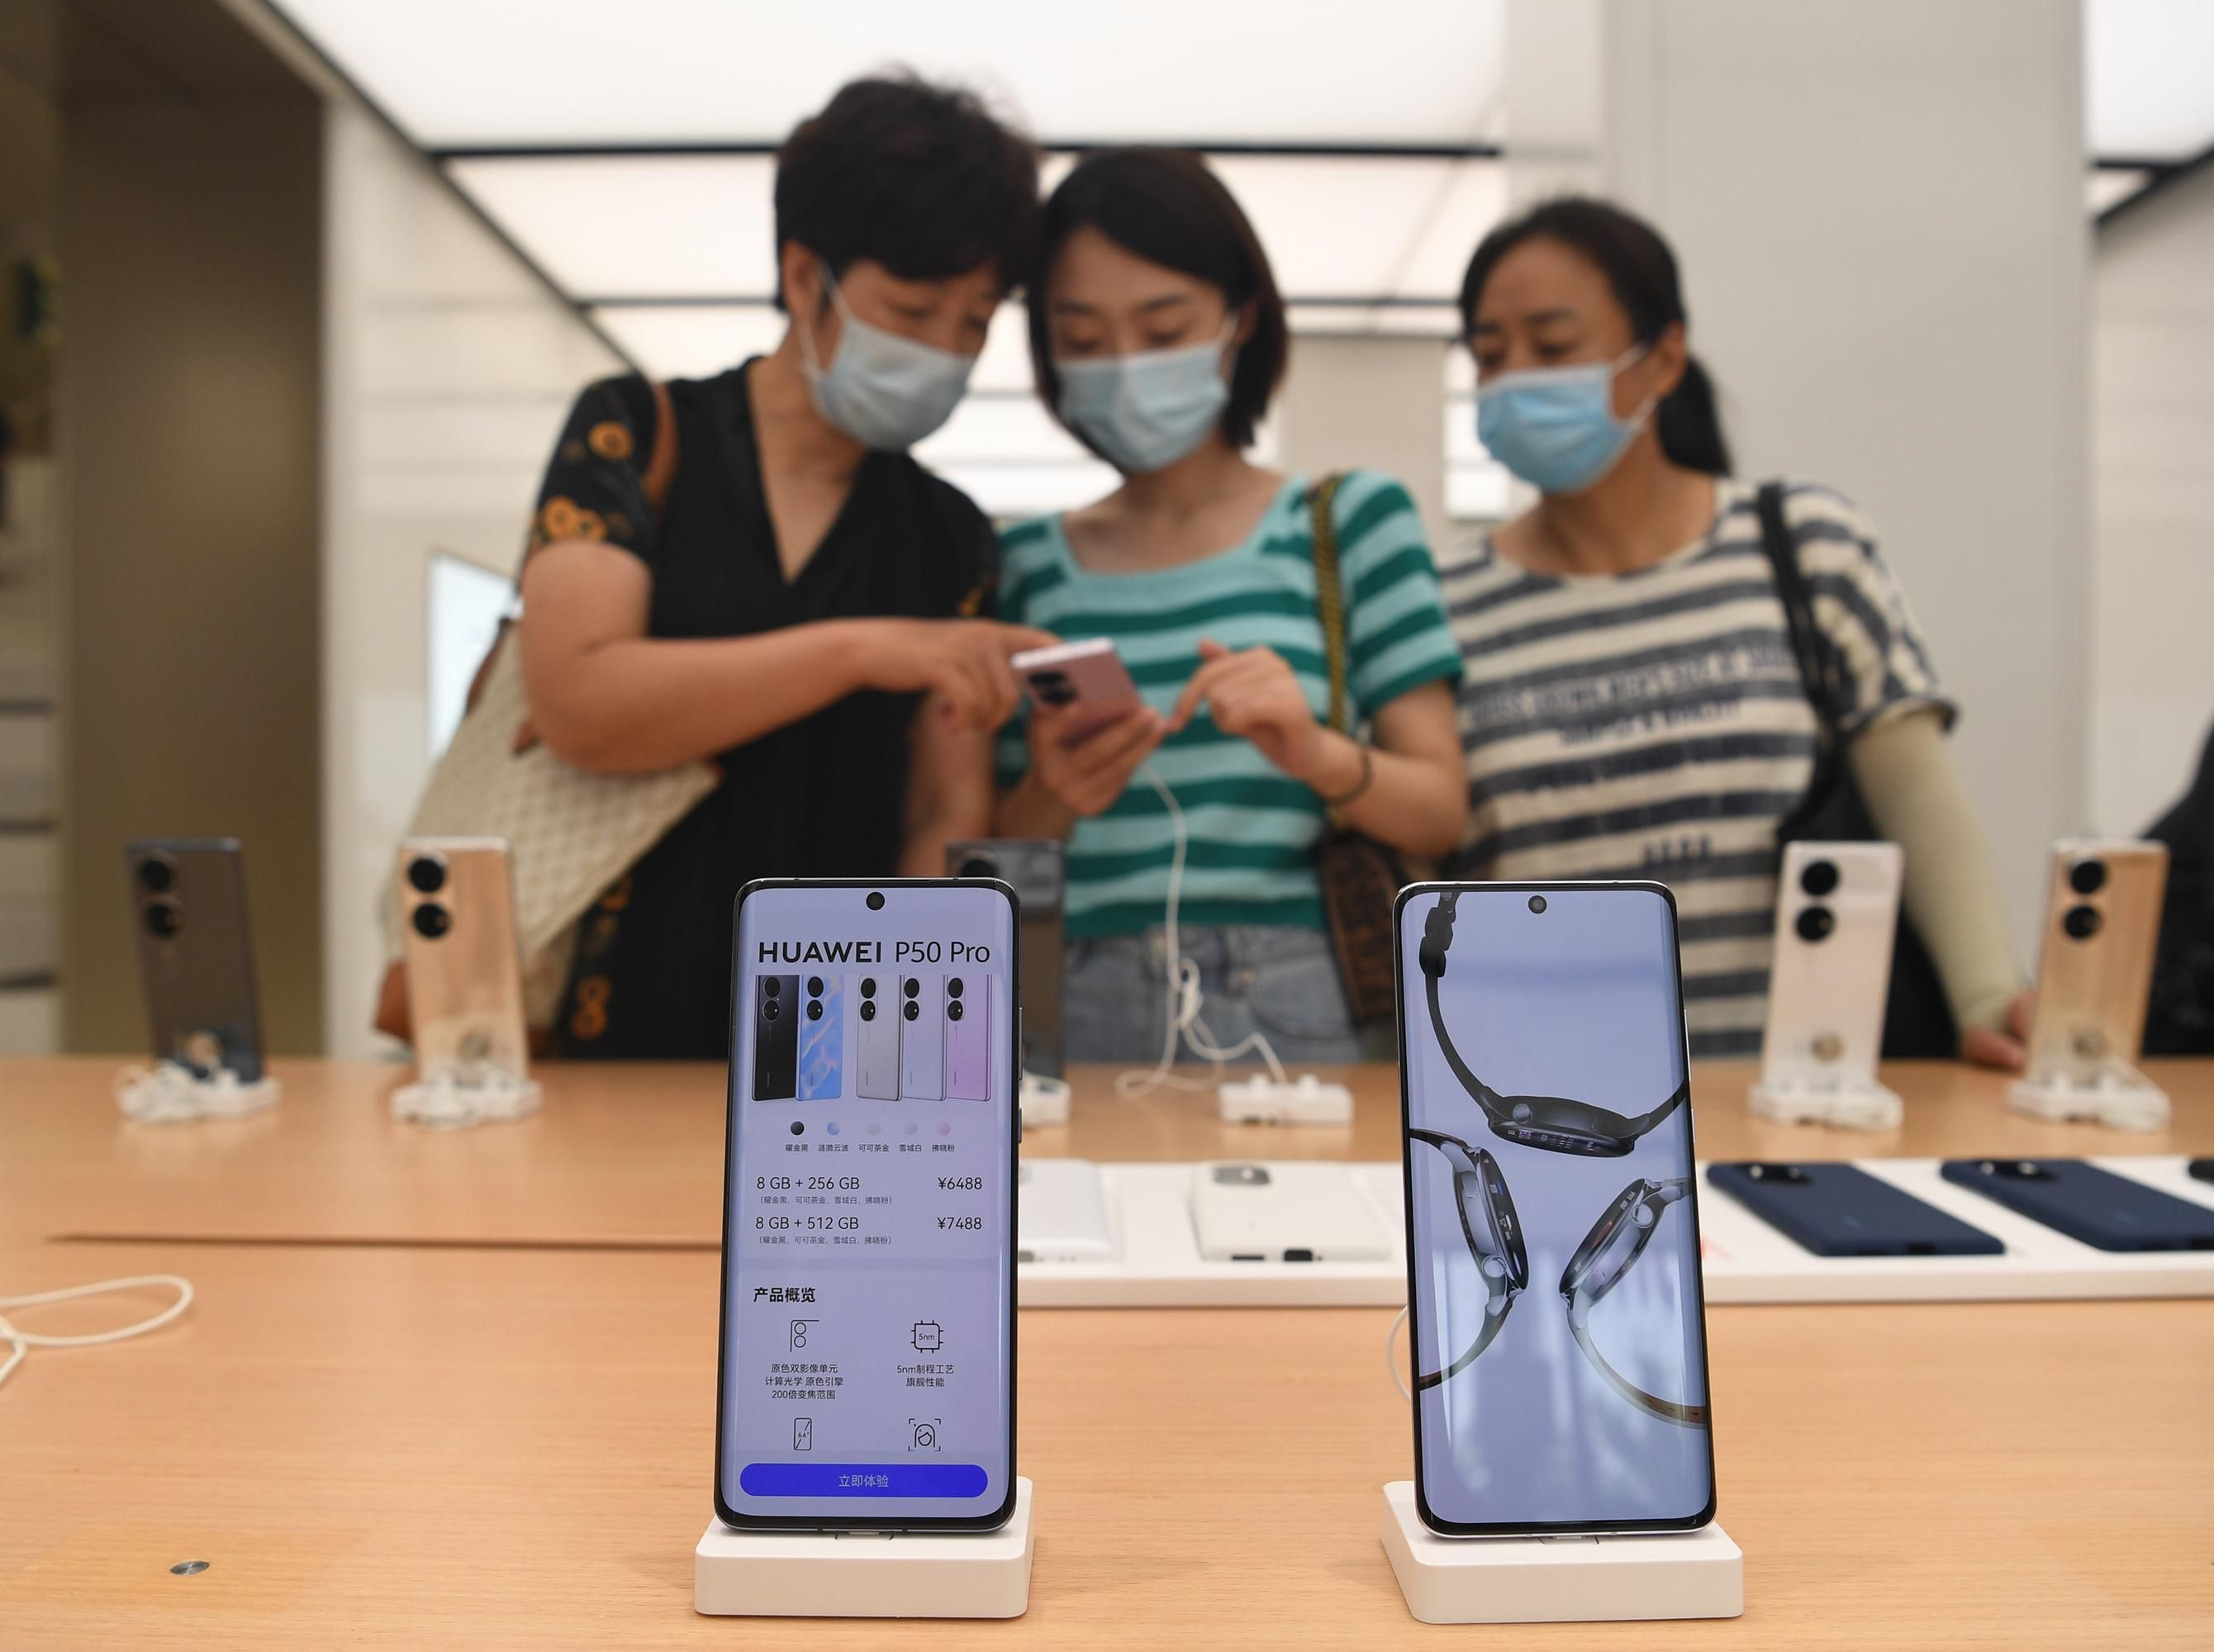 In the foreground, 2 rectangular phones sitting on white docks say Huawei P50 Pro. In the background, 3 women in masks look at phones on display.